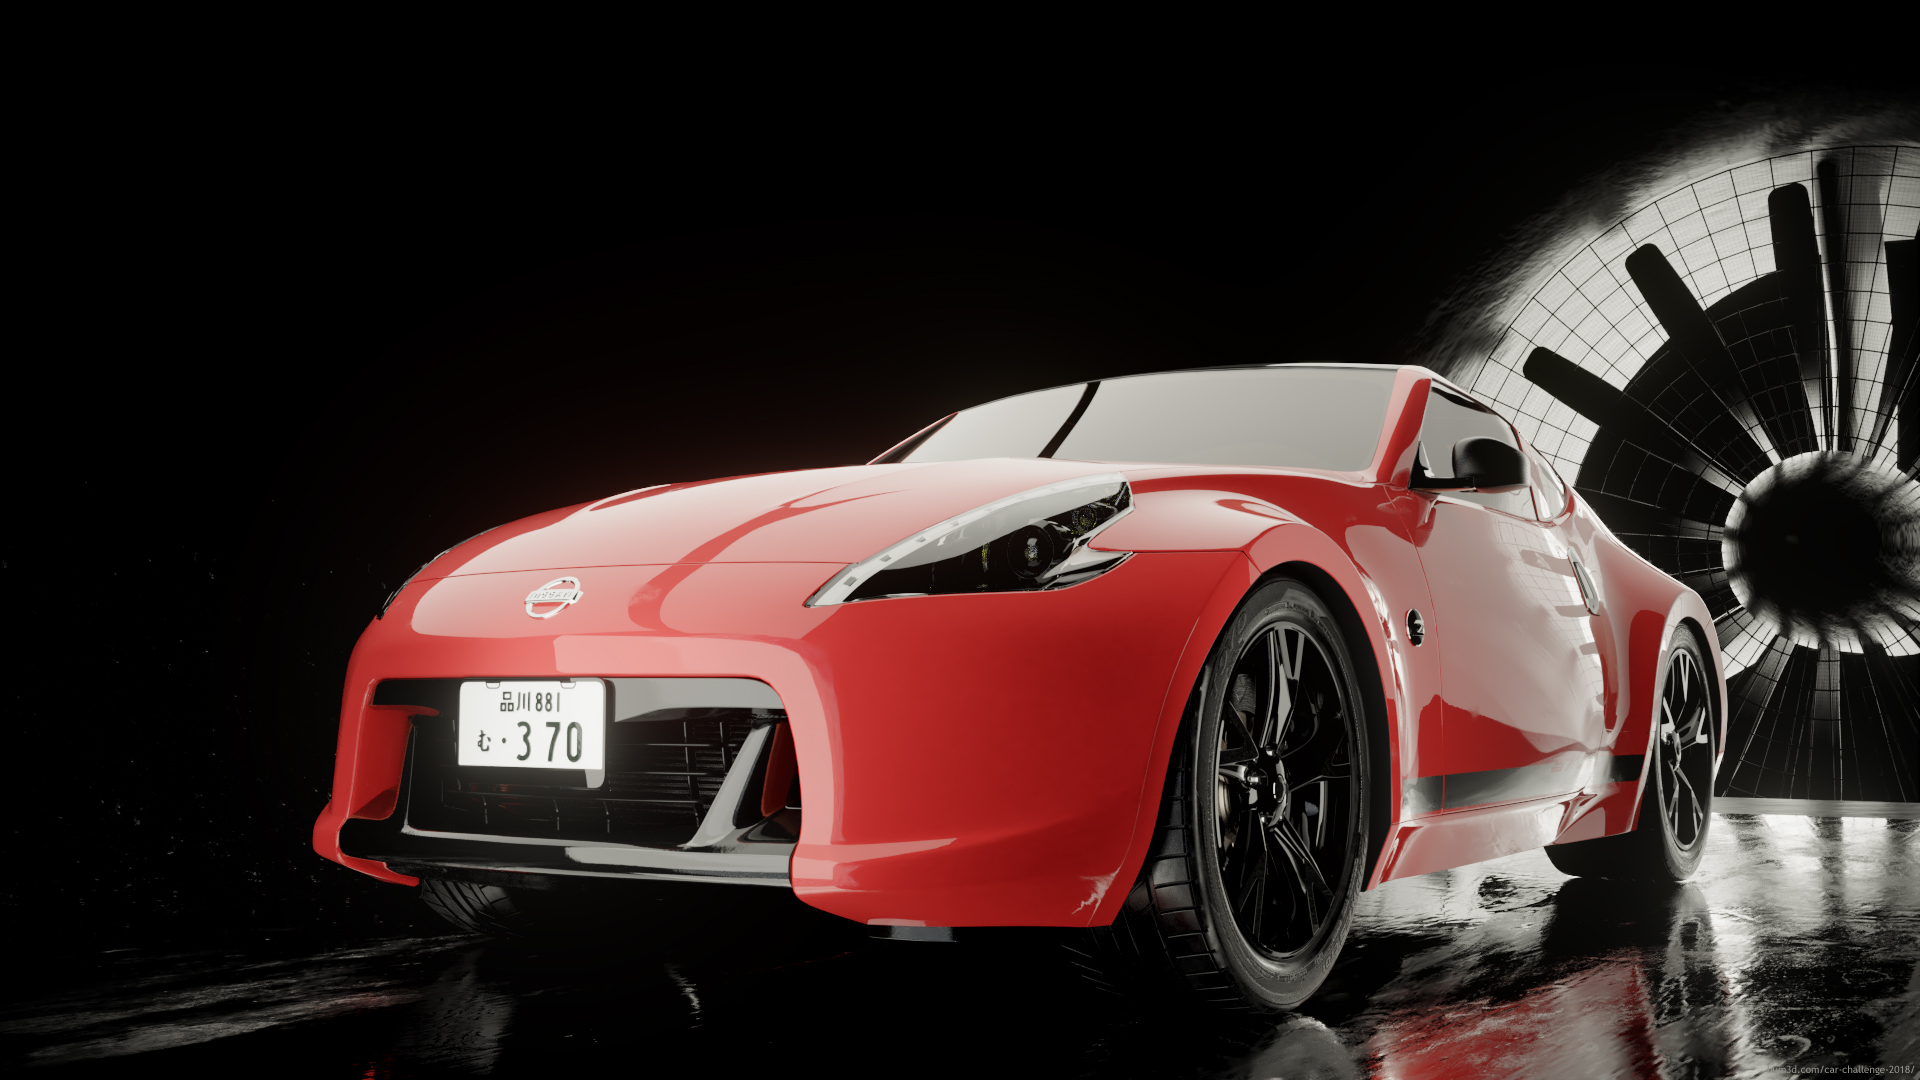 Before the storm - Nissan 370z 3d art